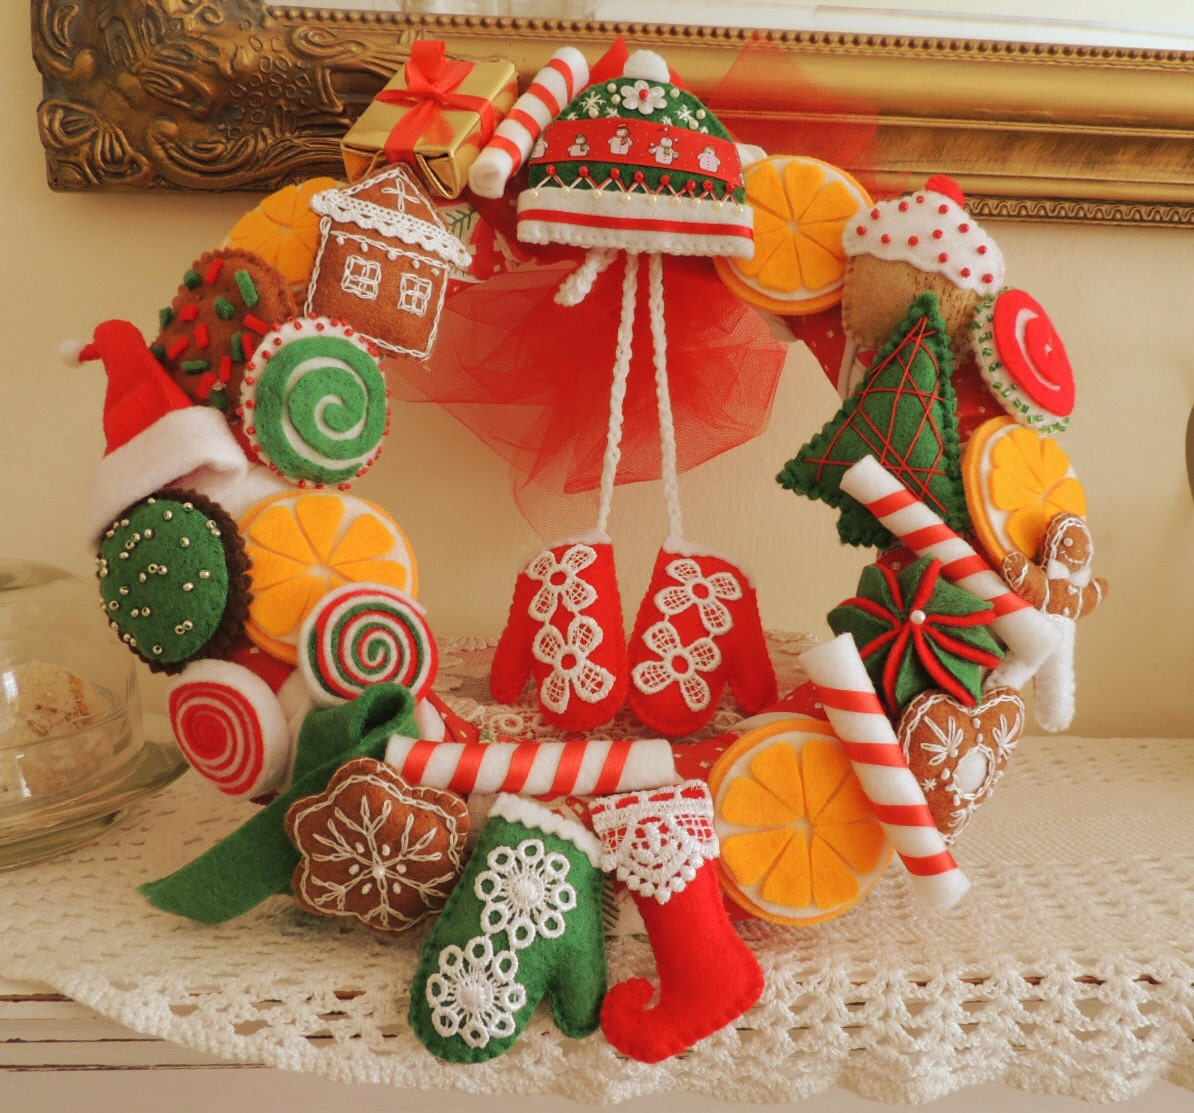 Christmas Wreath Felt Wreath Felt Home Decor Christmas Party Decor Christmas Decoration Felt Decoration Christmas Ornament Felt Food